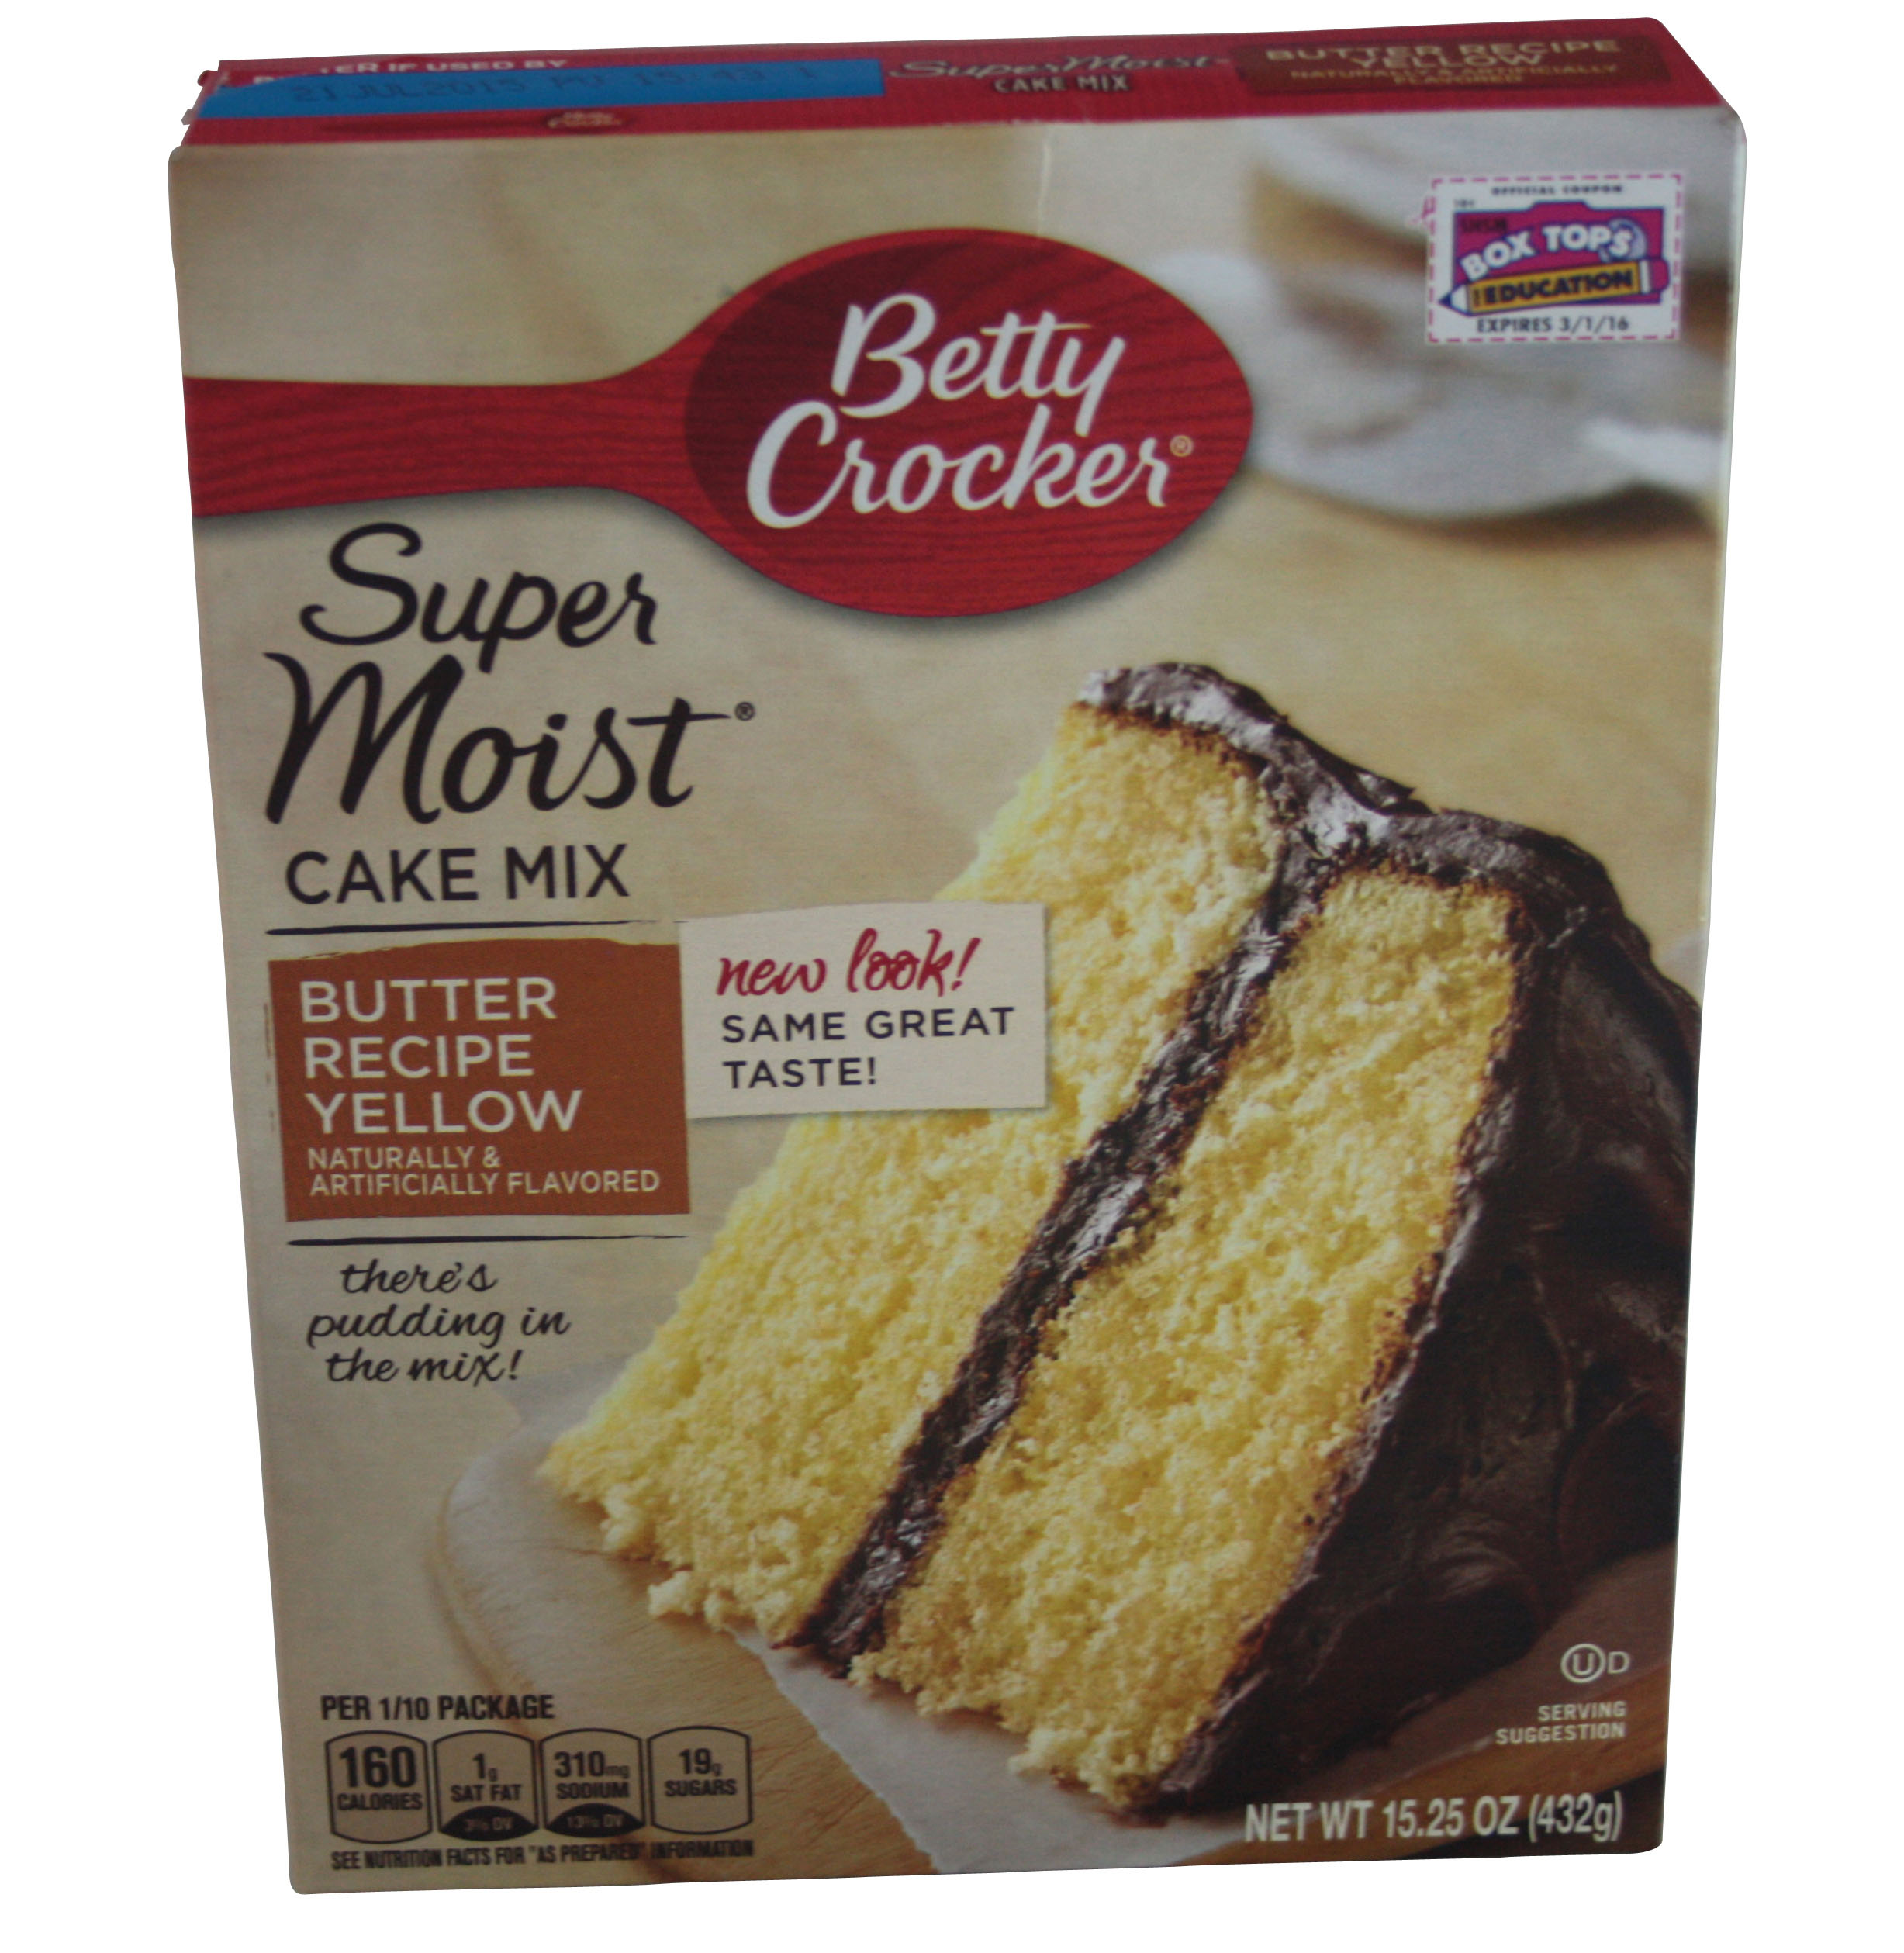 Betty Crocker Butter Recipe Yellow